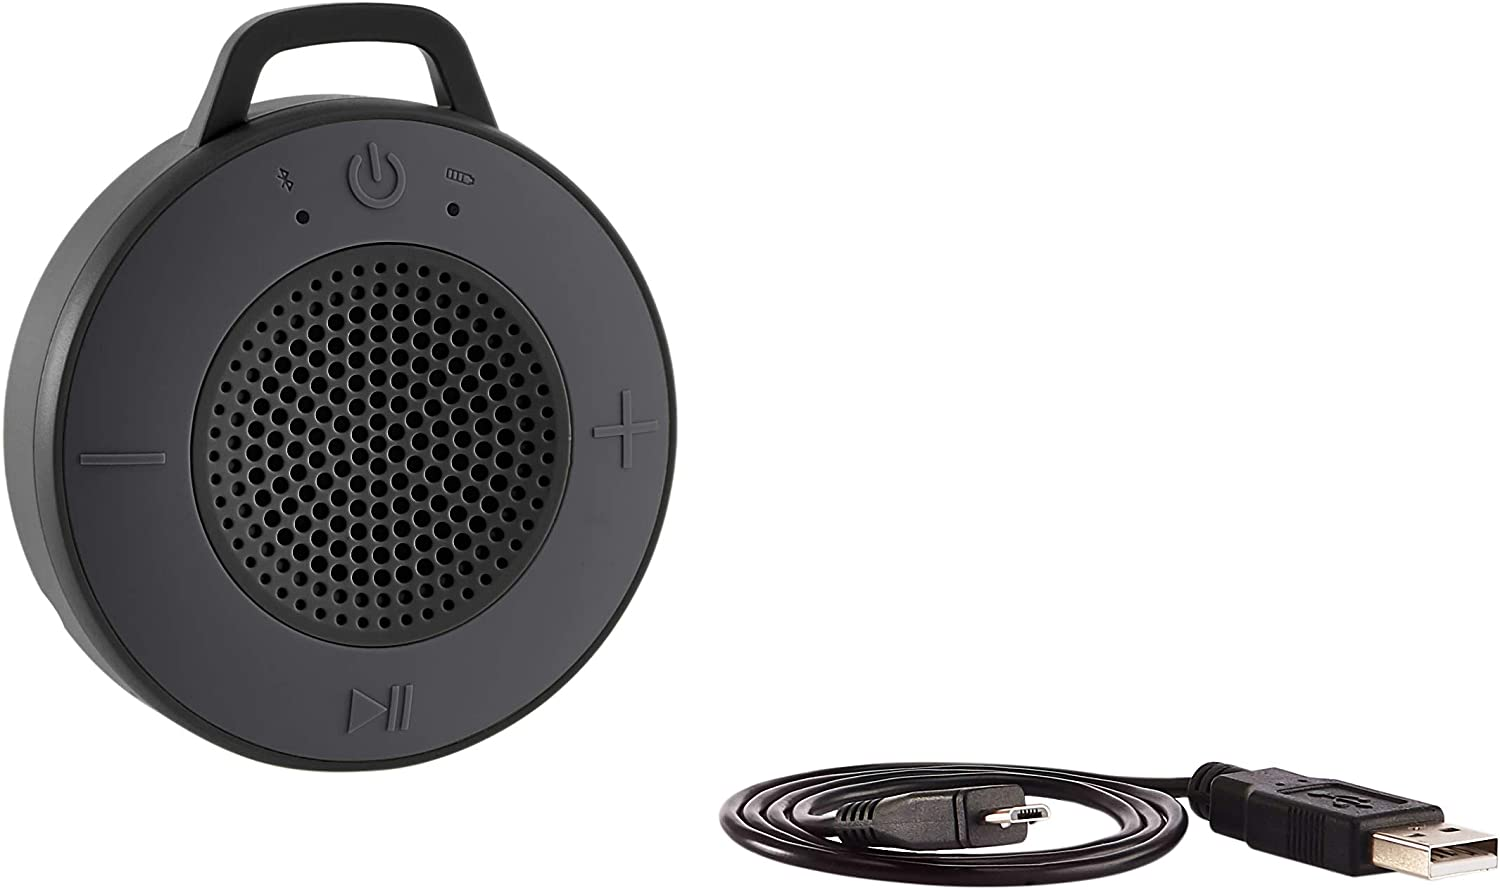 AmazonBasics Wireless Shower Speaker with 5W Driver, Suction Cup, Built-in Mic - Gray